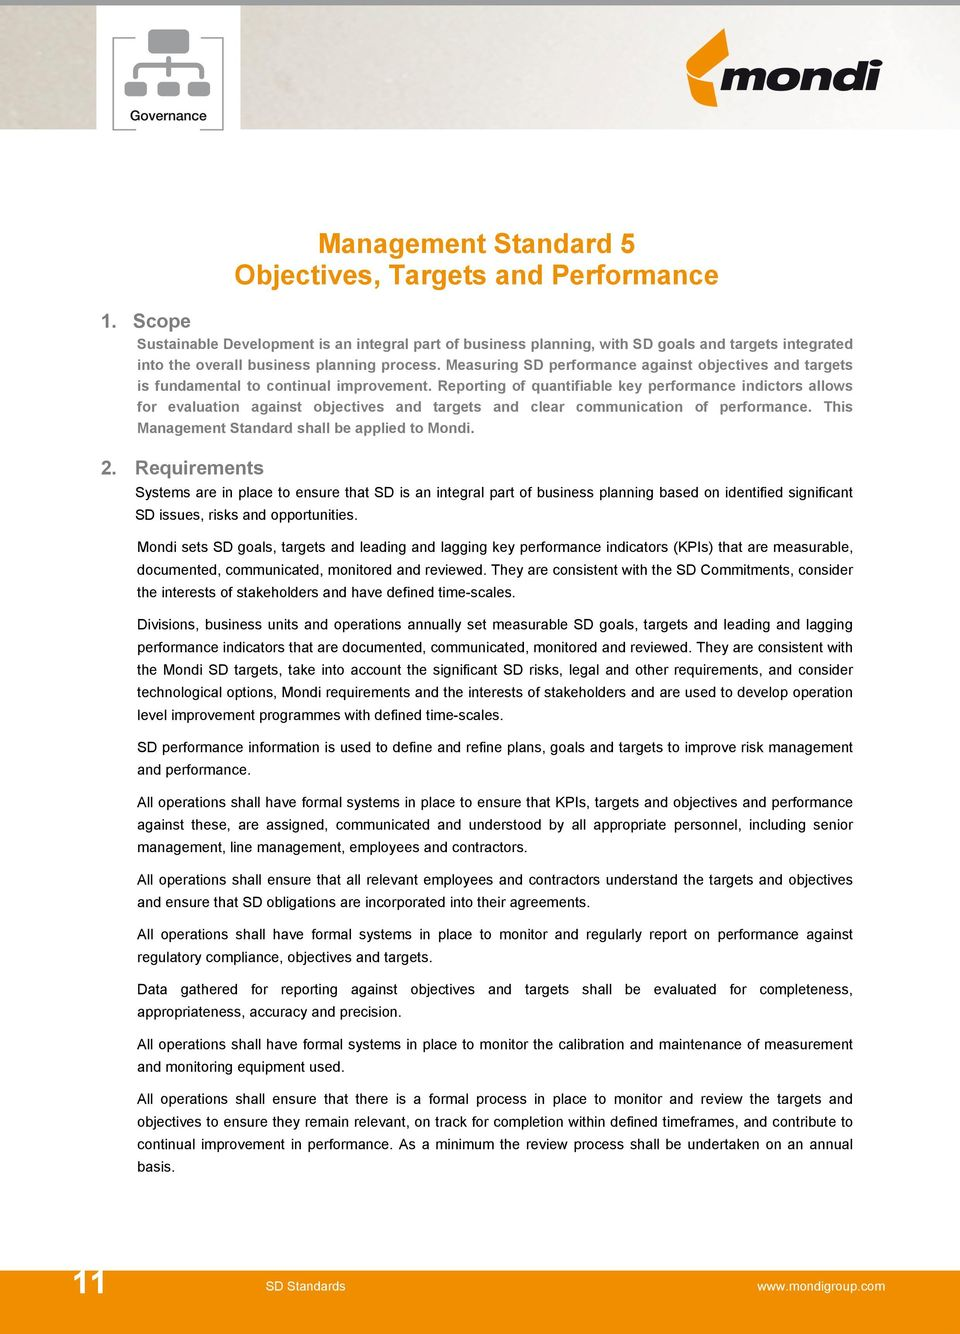 Reporting of quantifiable key performance indictors allows for evaluation against objectives and targets and clear communication of performance. This Management Standard shall be applied to Mondi.